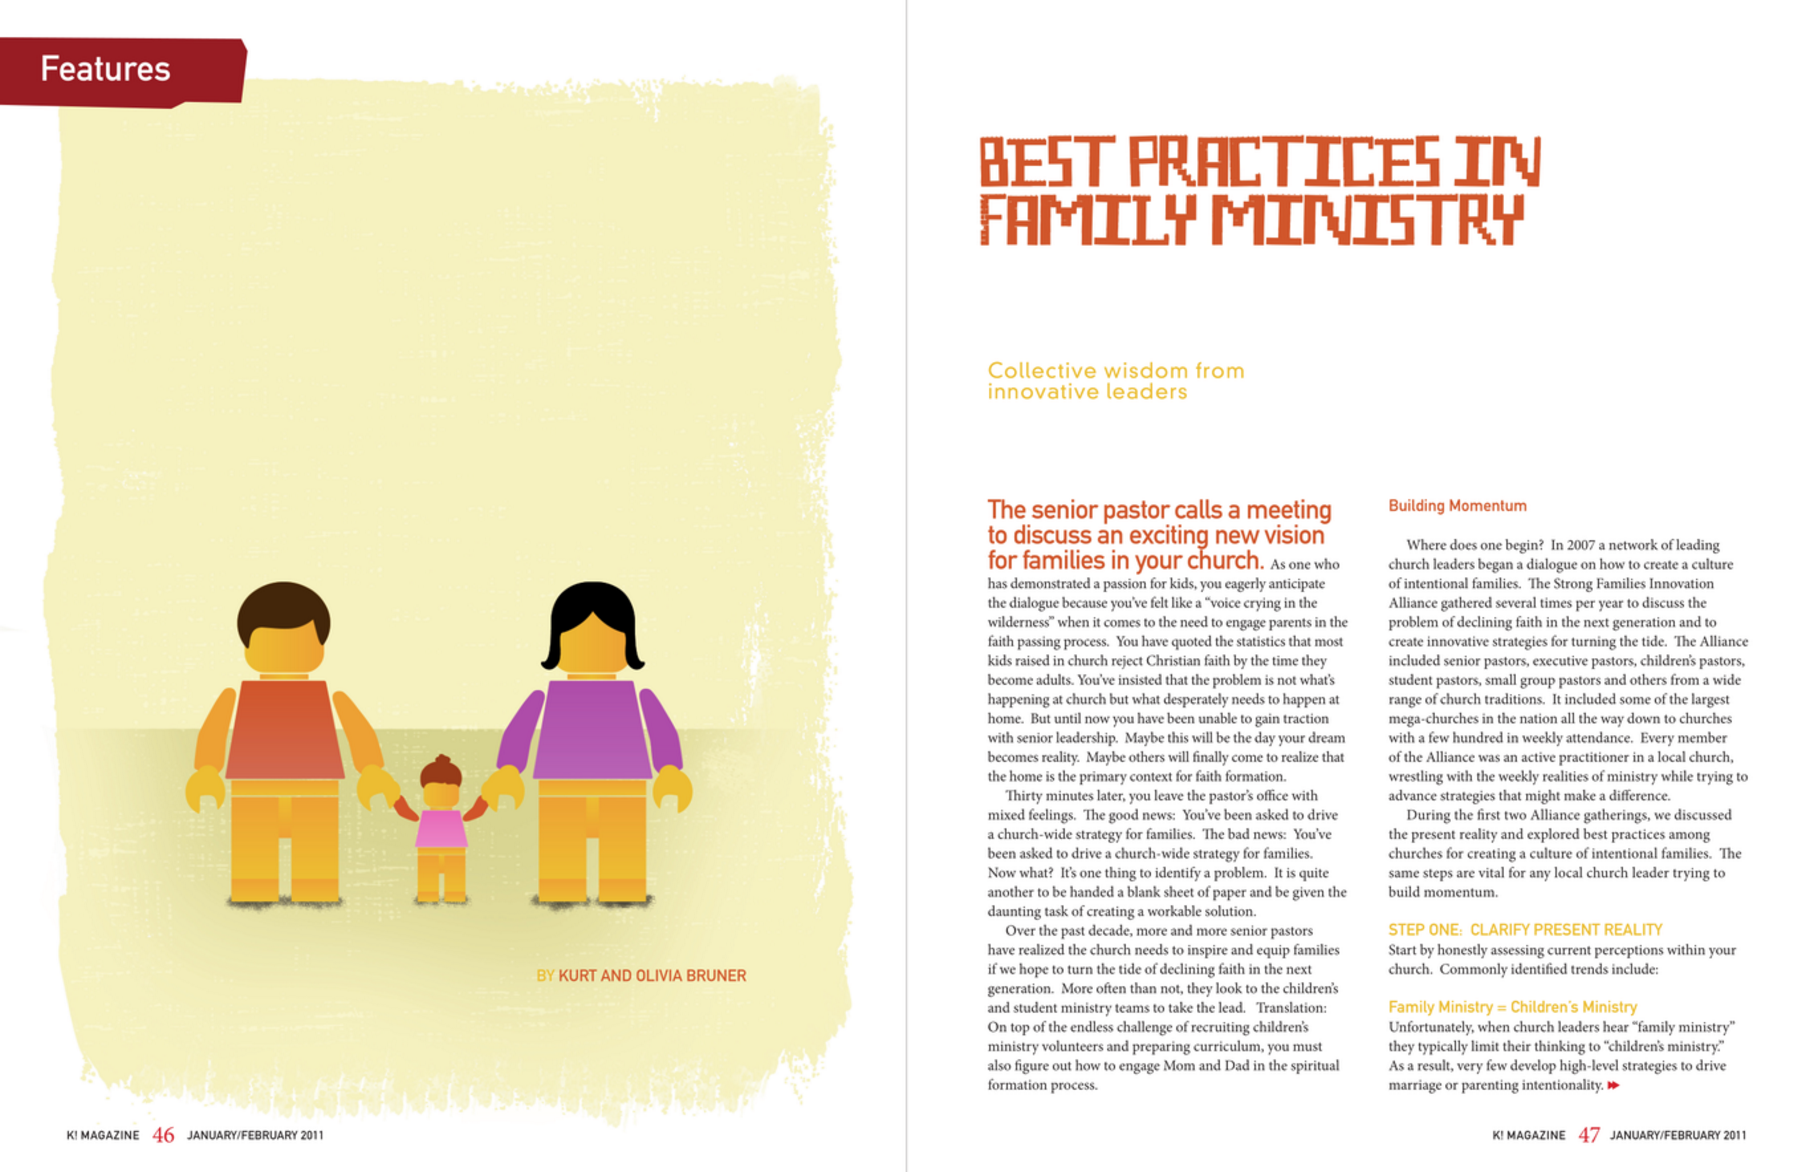 Best Practices in Family Ministry